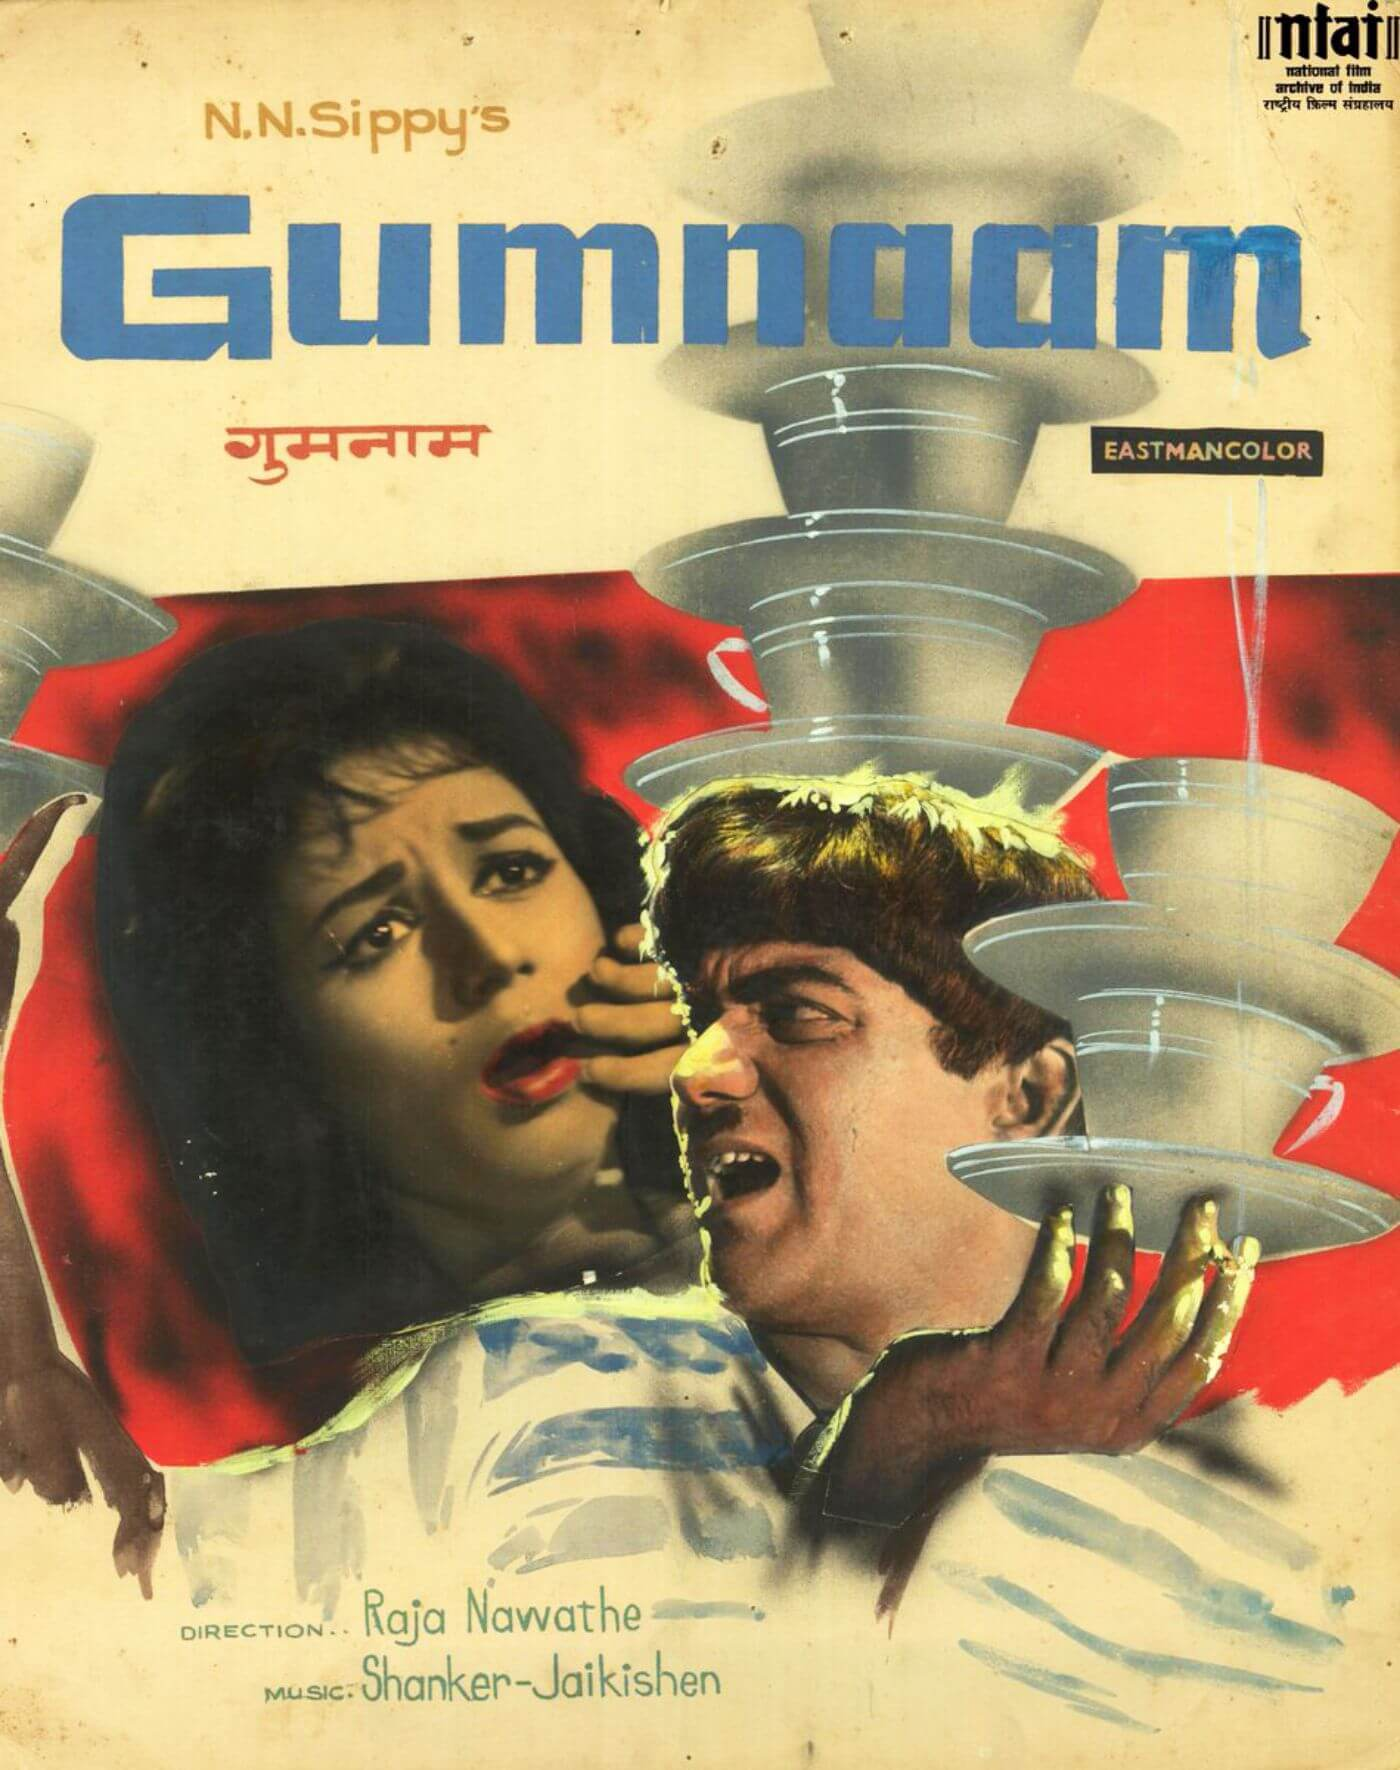 Gumnaam - Classic Bollywood Hindi Movie Vintage Poster - Posters